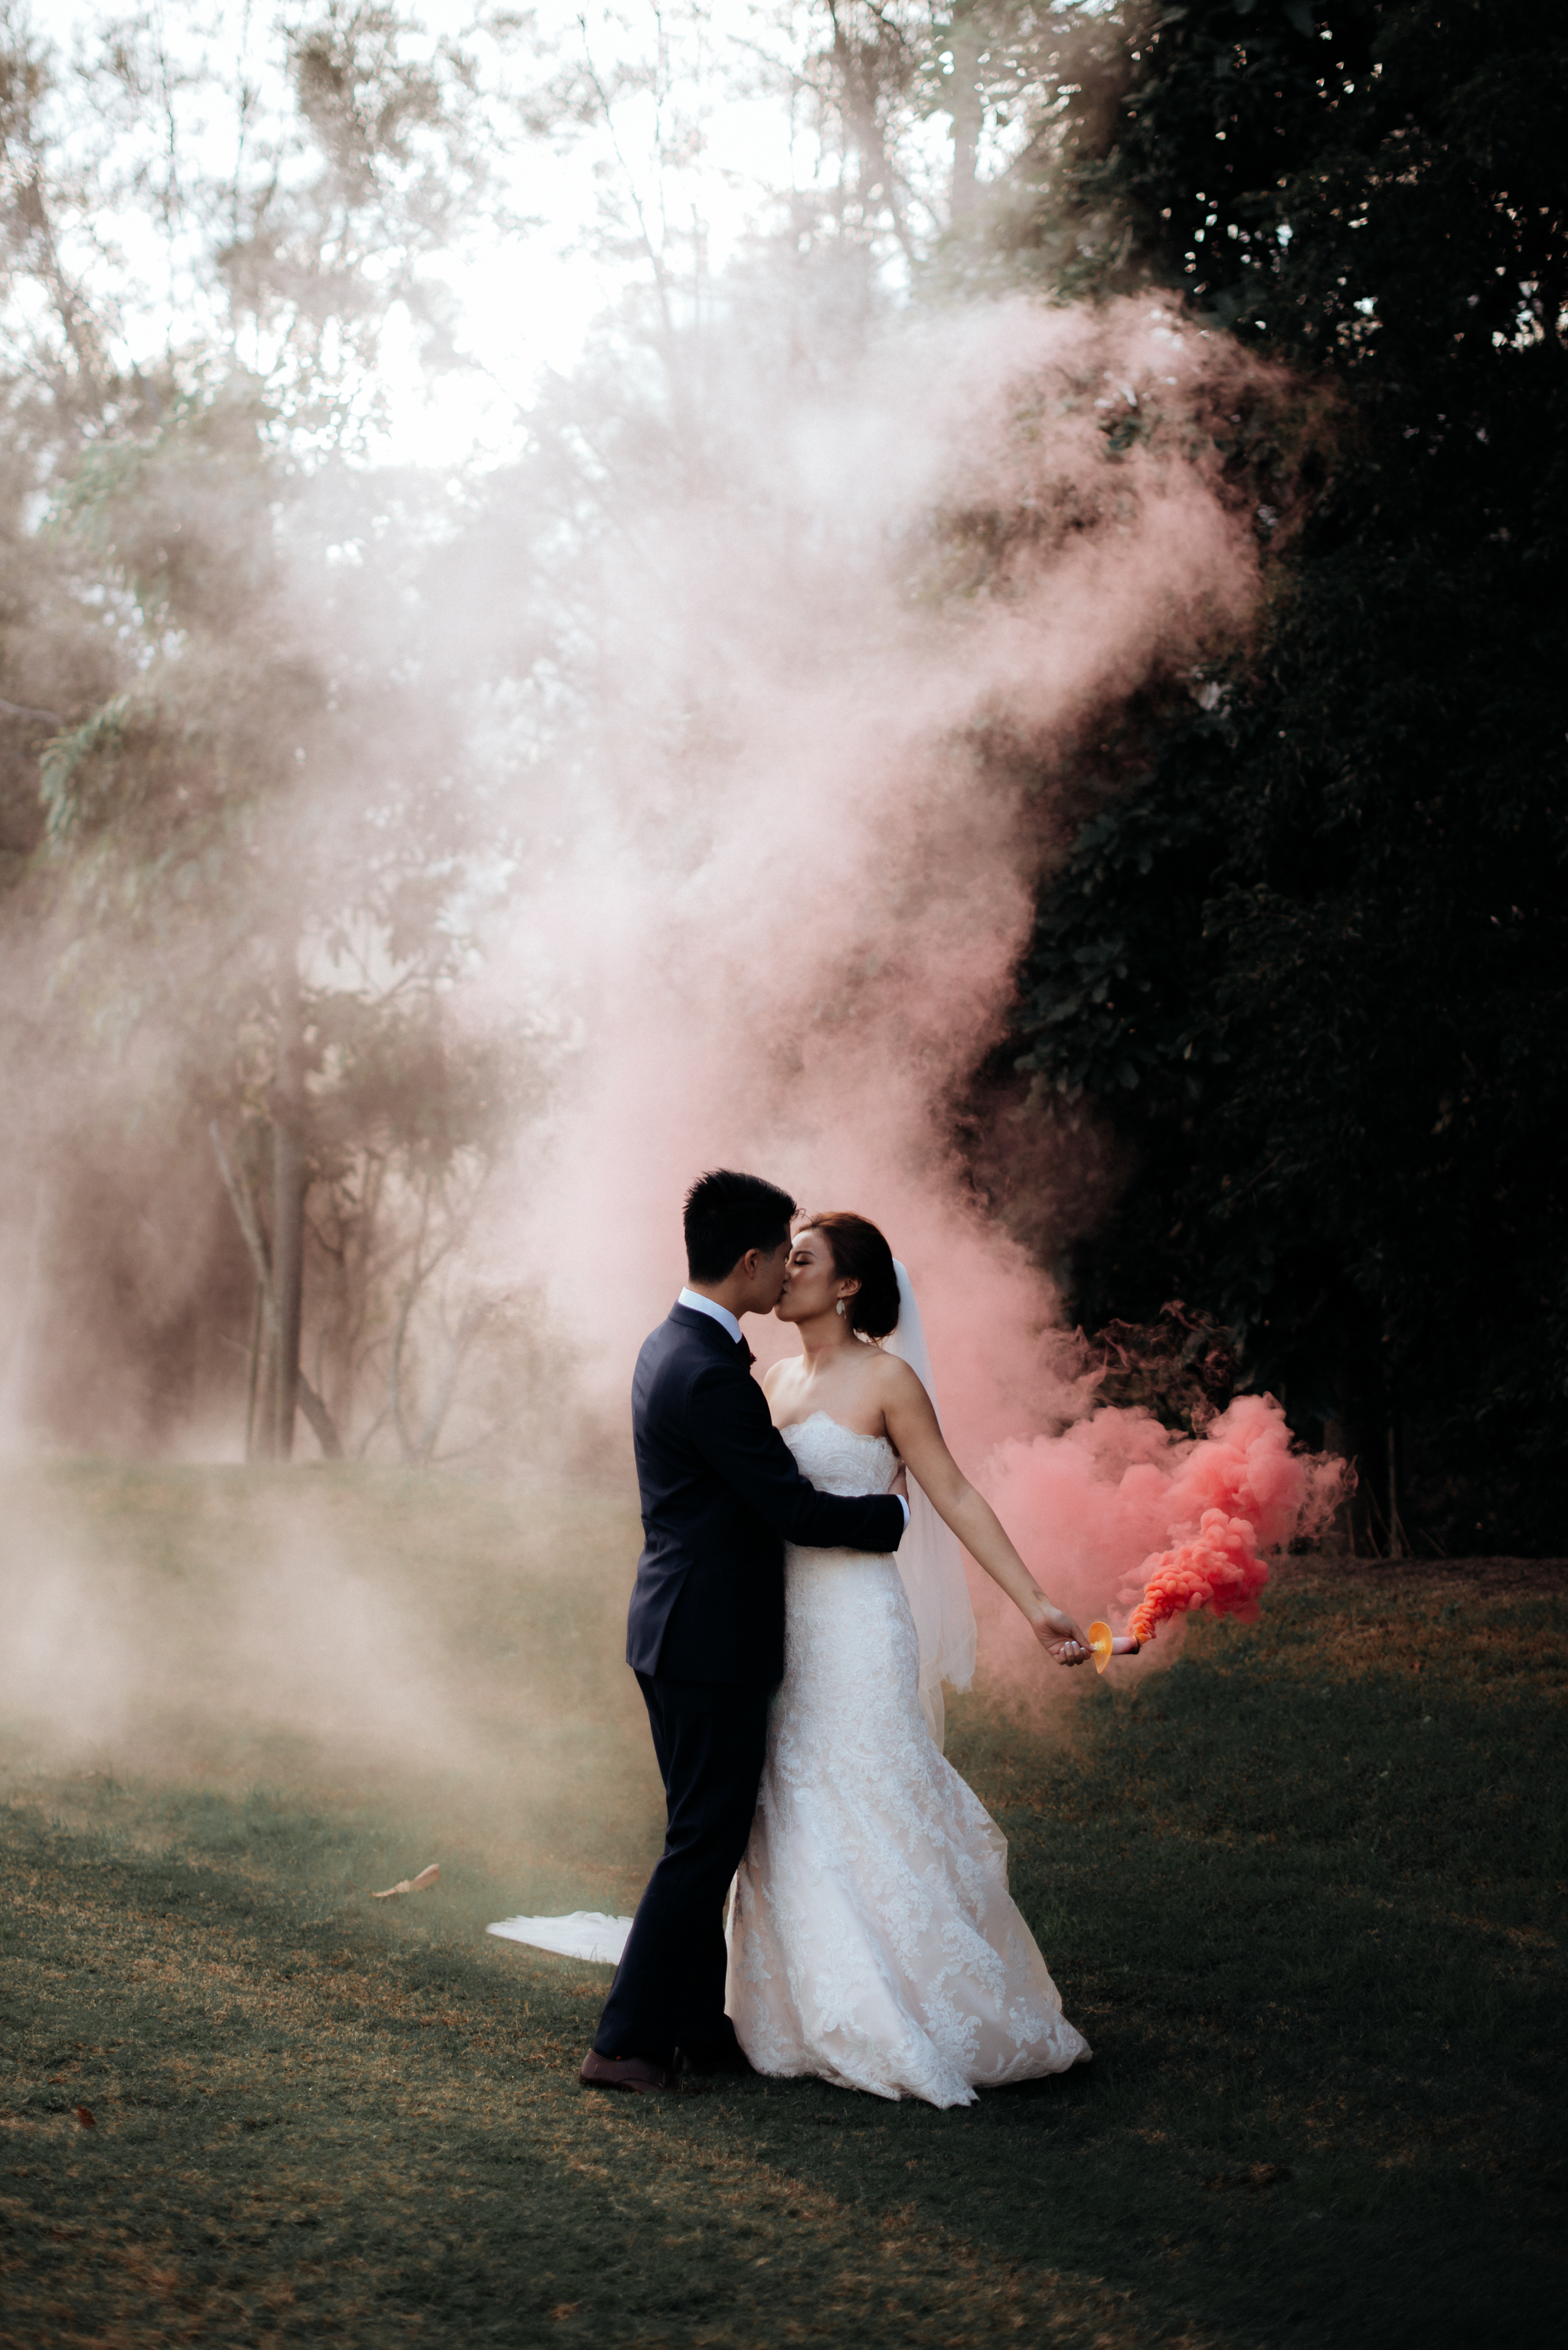 LOVELENSCAPES PHOTOGRAPHY • BRISBANE WEDDING PHOTOGRAPHER • VICTORIA PARK GOLF • VISUAL POETRY • TRADITIONAL VIETNAMESE WEDDING